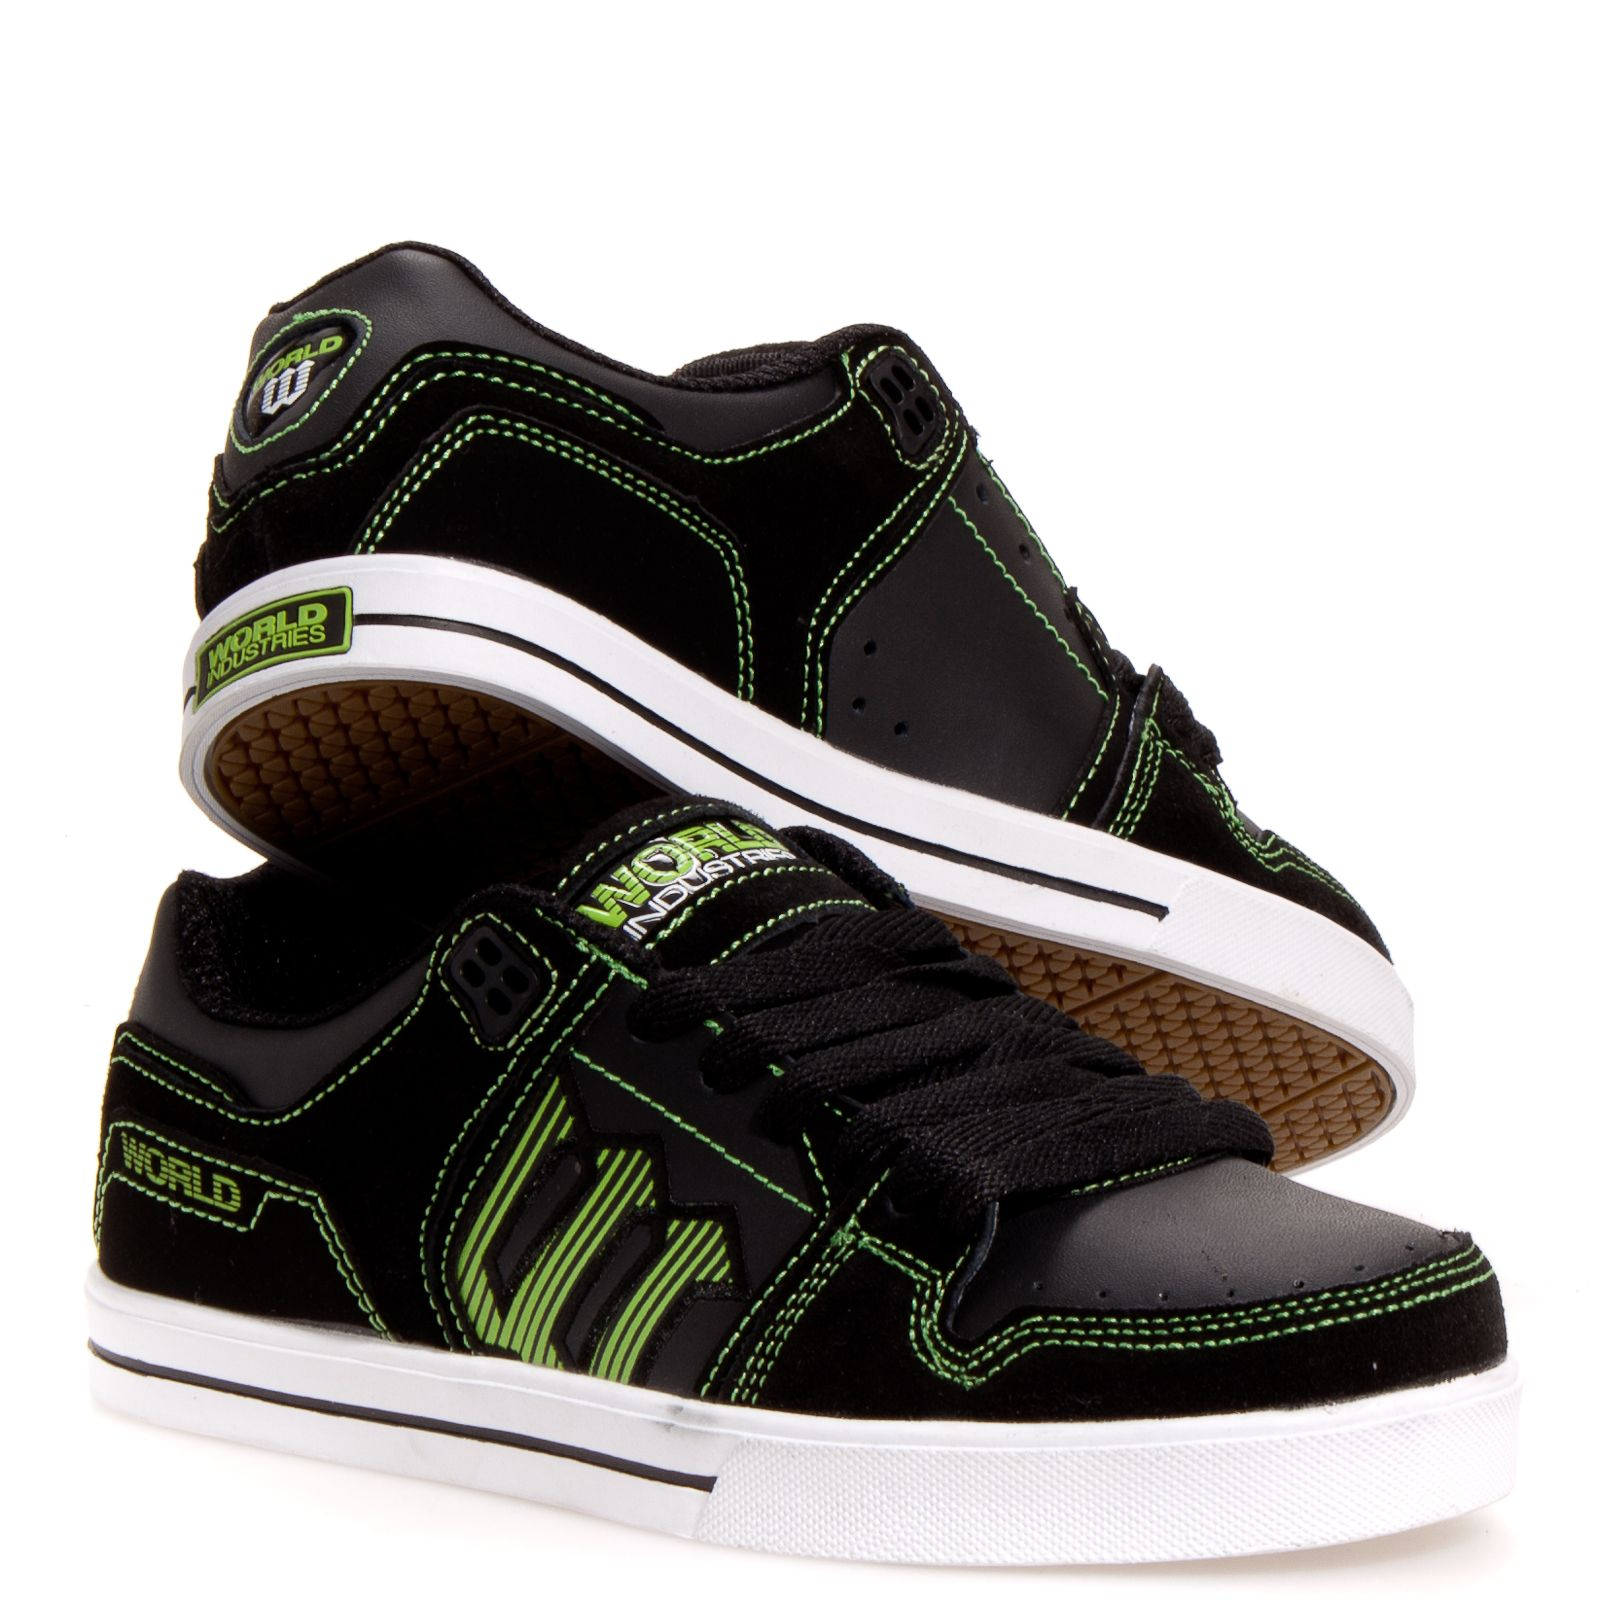 World Industries Monarch Men's Skate Shoes: Black 9.5 | Mens